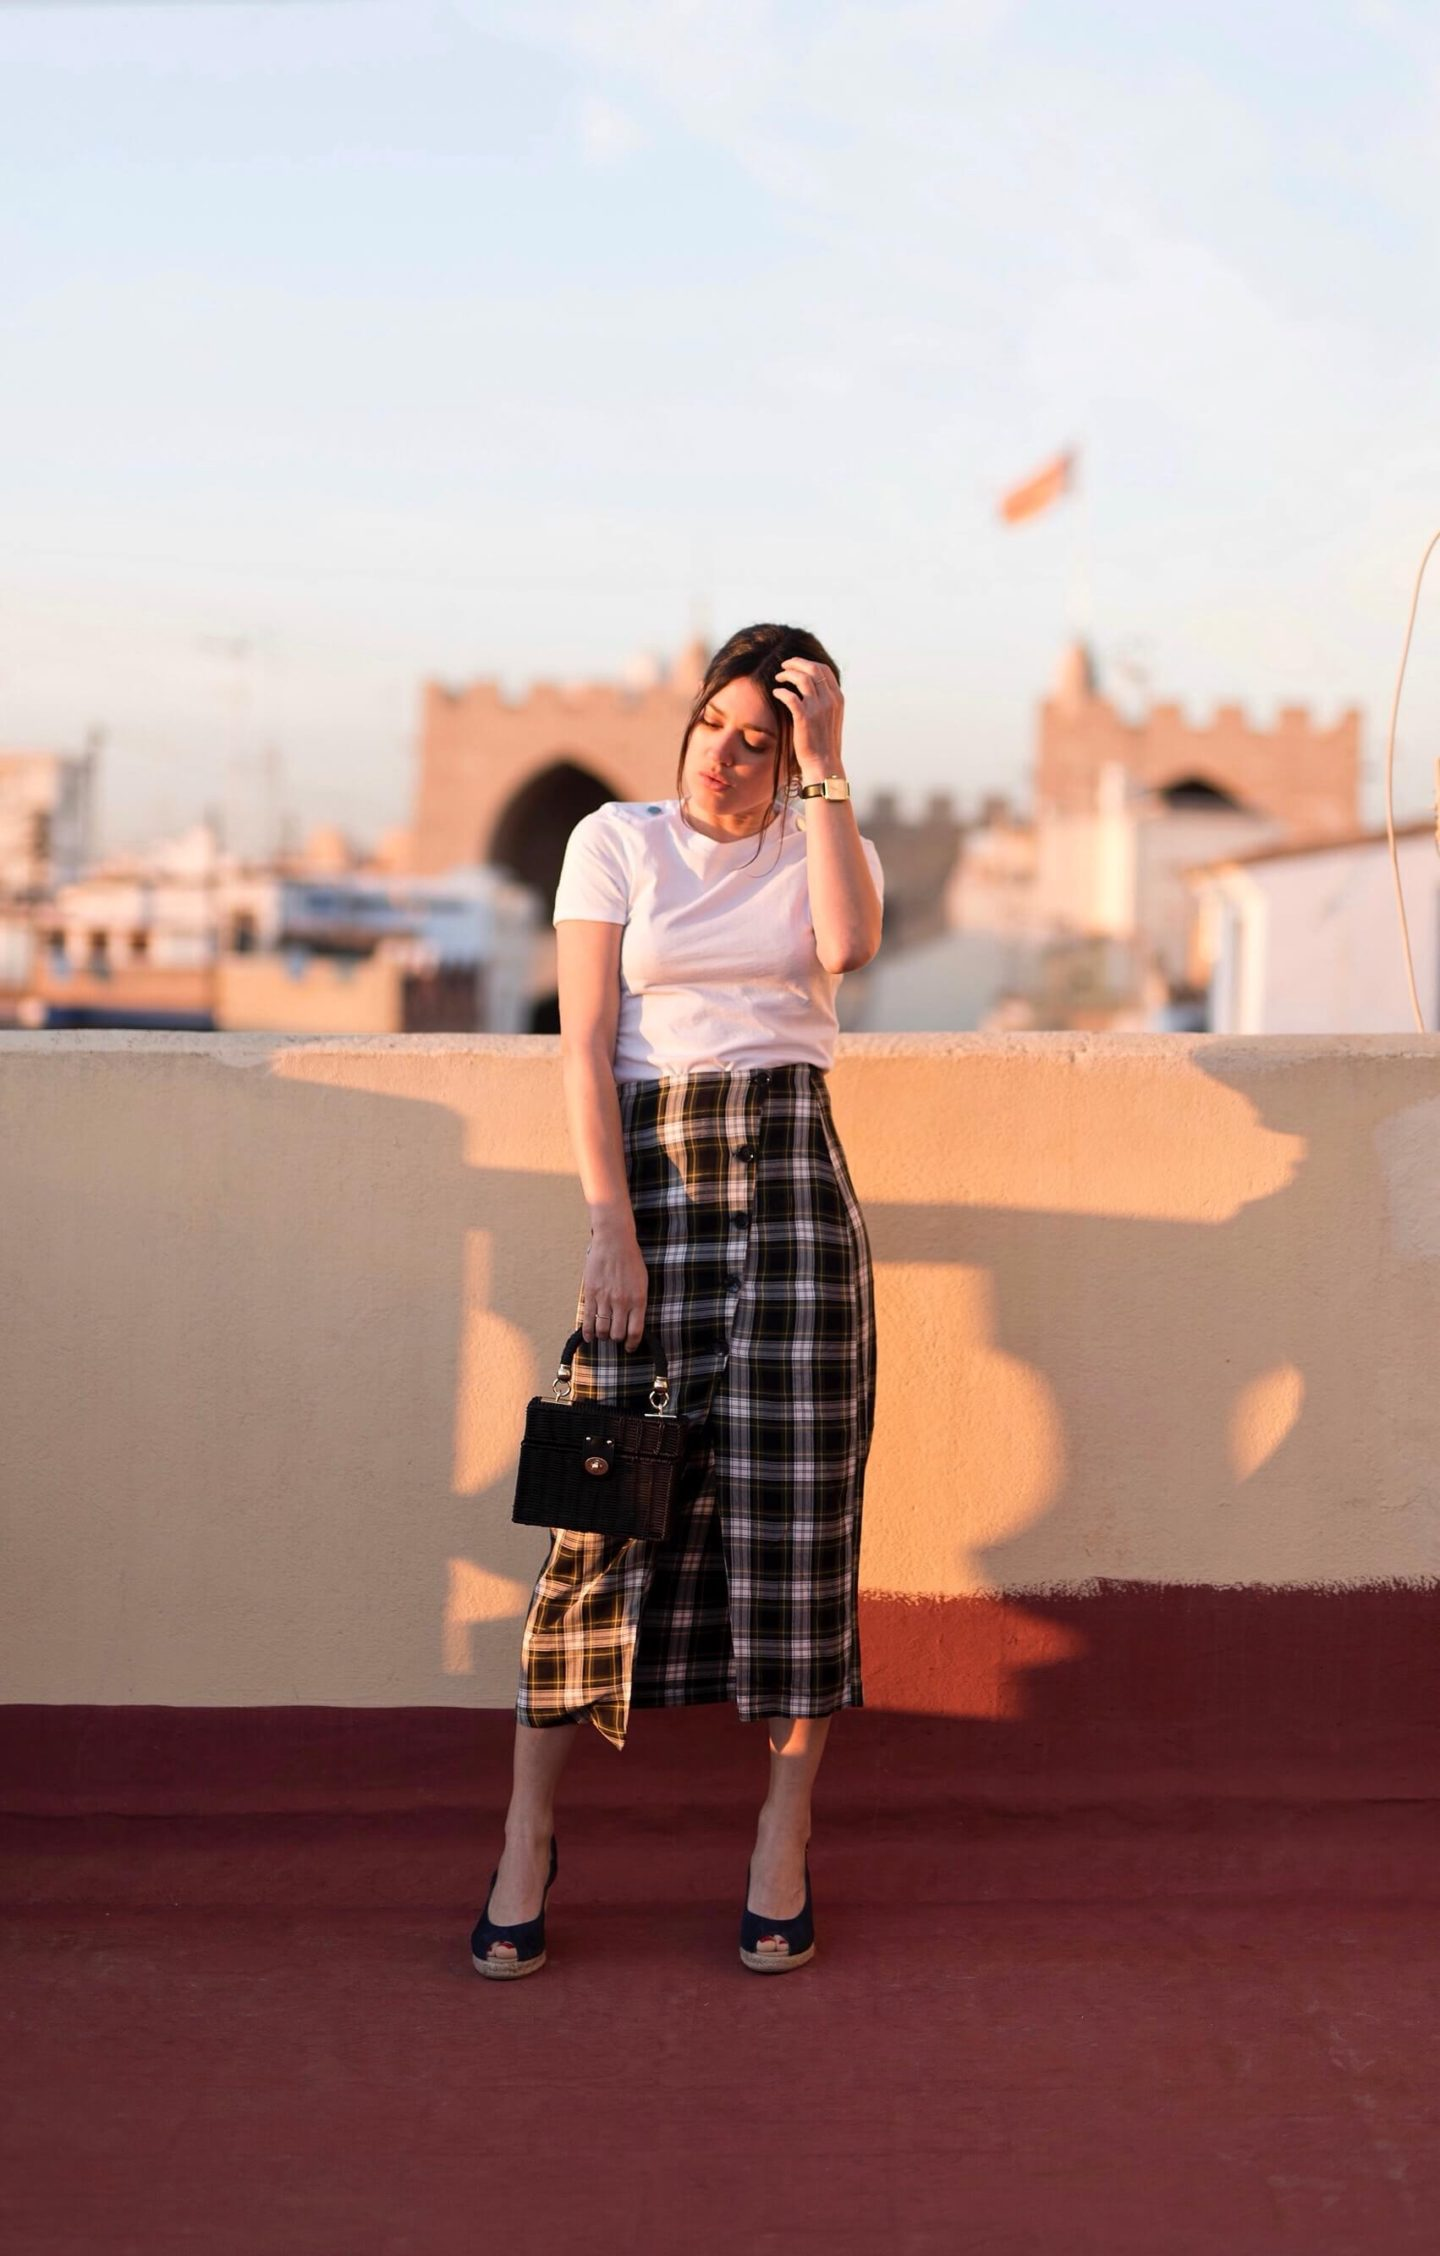 look sunset in Valance Espana Jupe midi à carreaux L'atelier d'al blog mode look sunset in Valance Espana Jupe midi à carreaux L'atelier d'al blog mode